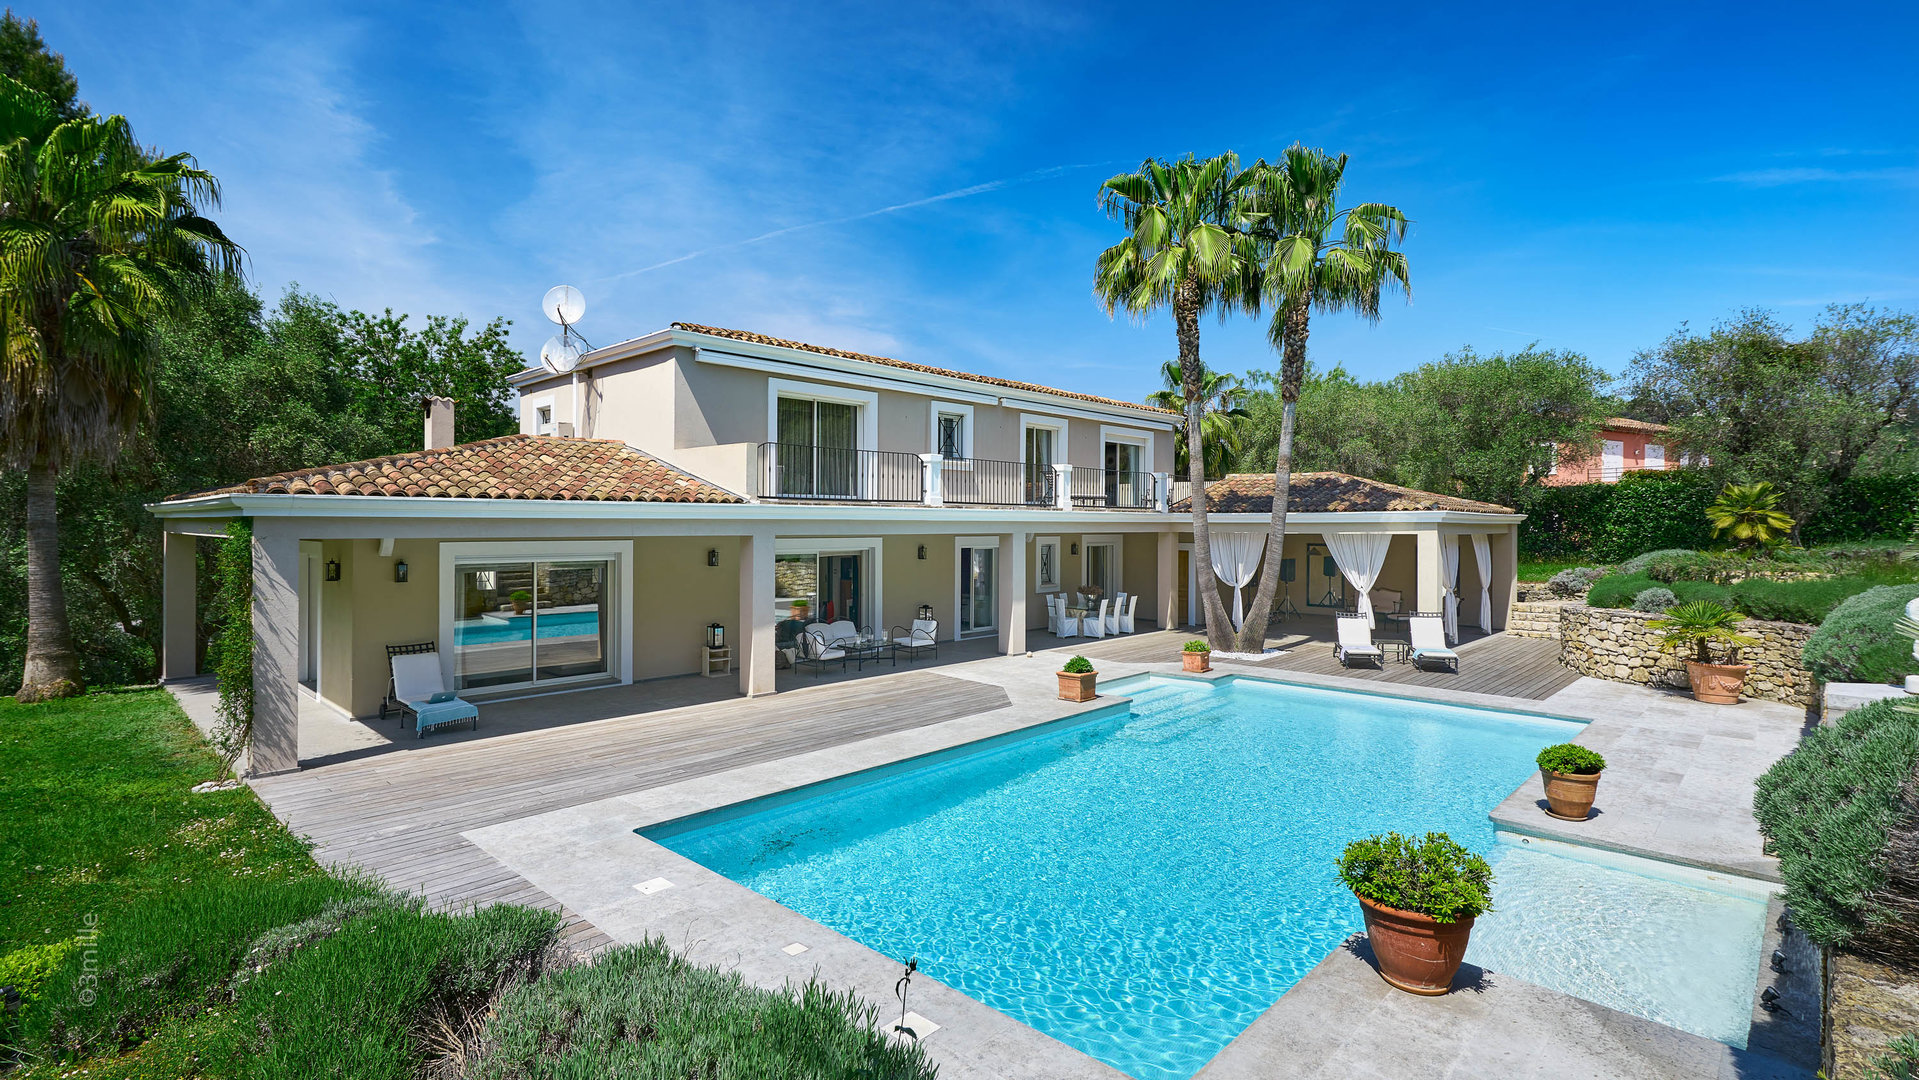 Beautiful recent villa with pool in secure domain in Mougins